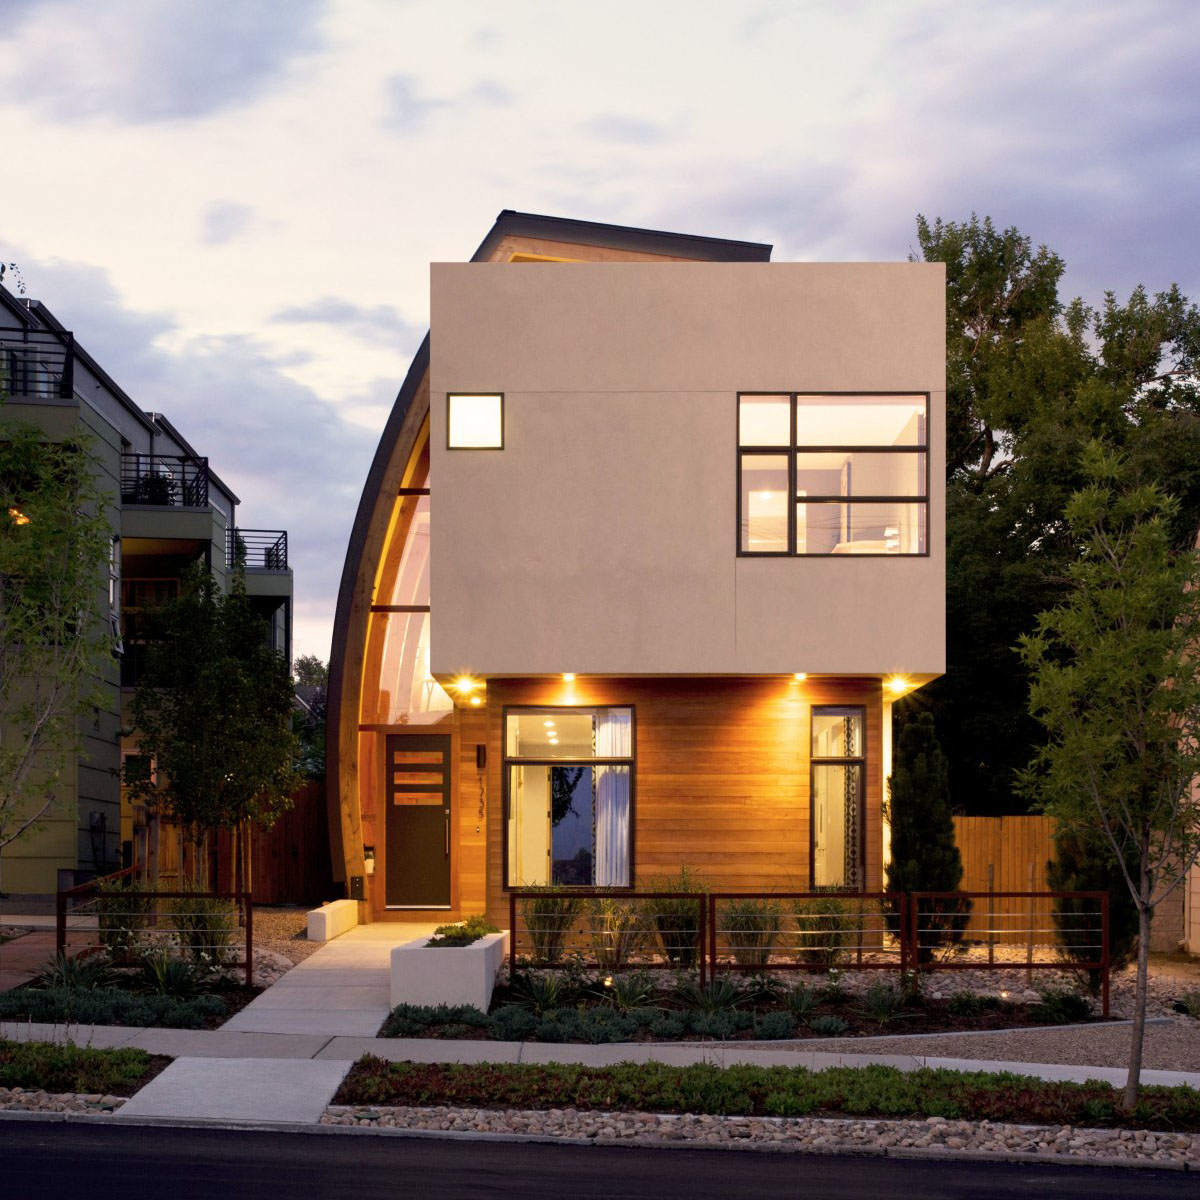 Inspiring urban infill with sun catching curve metal Modern home construction